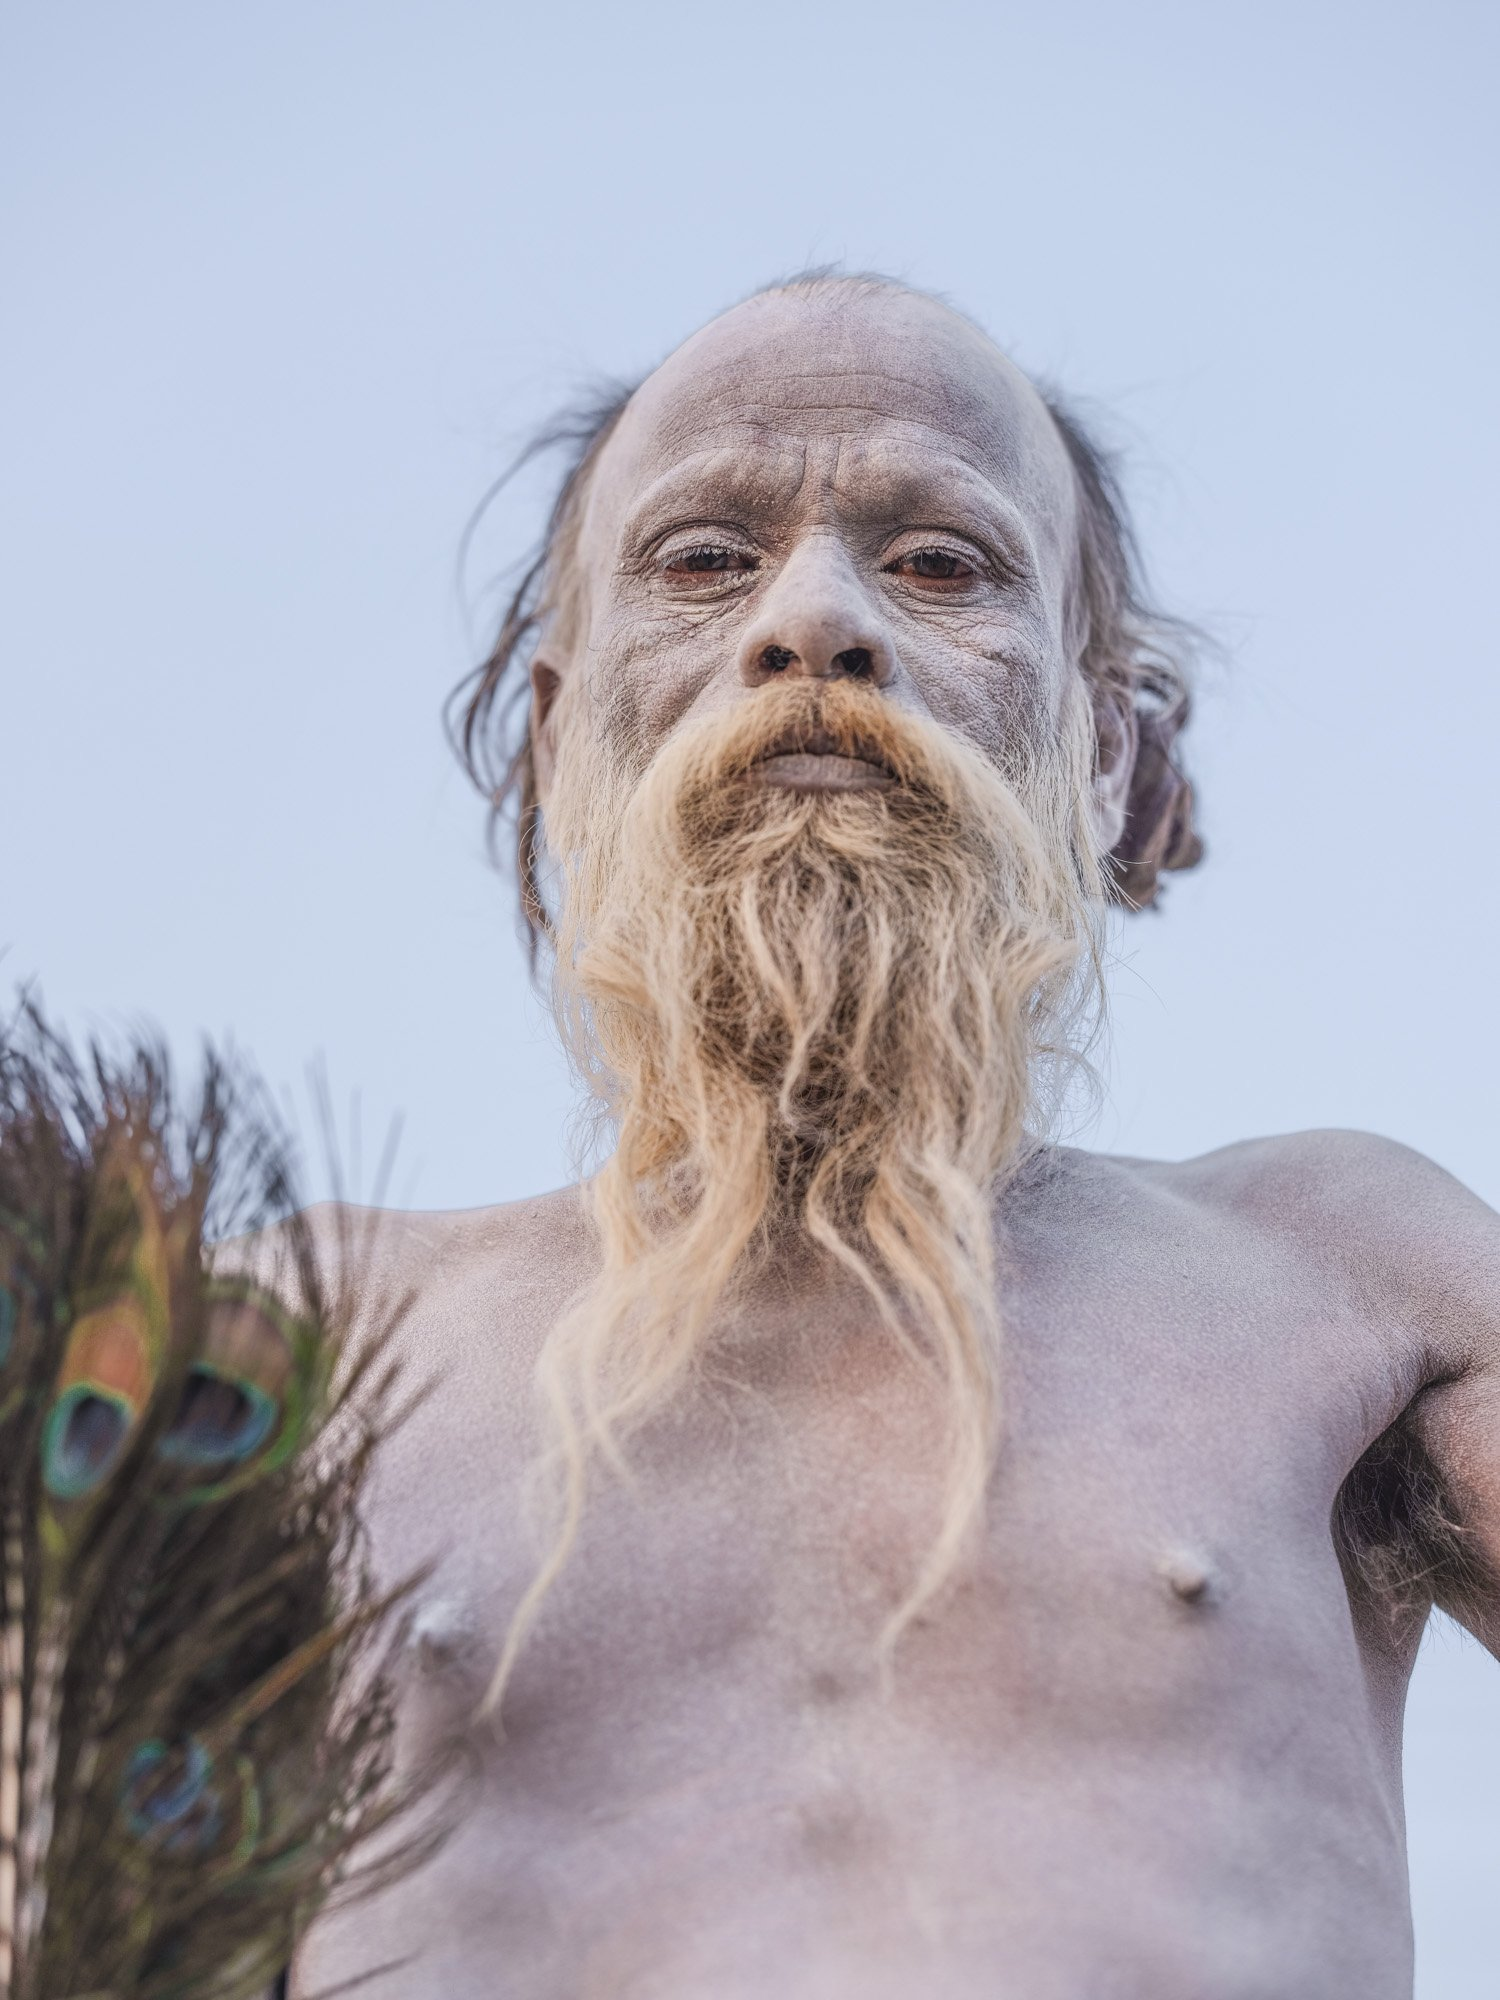 baba naked and white skin pilgrims Kumbh mela 2019 India Allahabad Prayagraj Ardh hindu religious Festival event rivers photographer jose jeuland photography